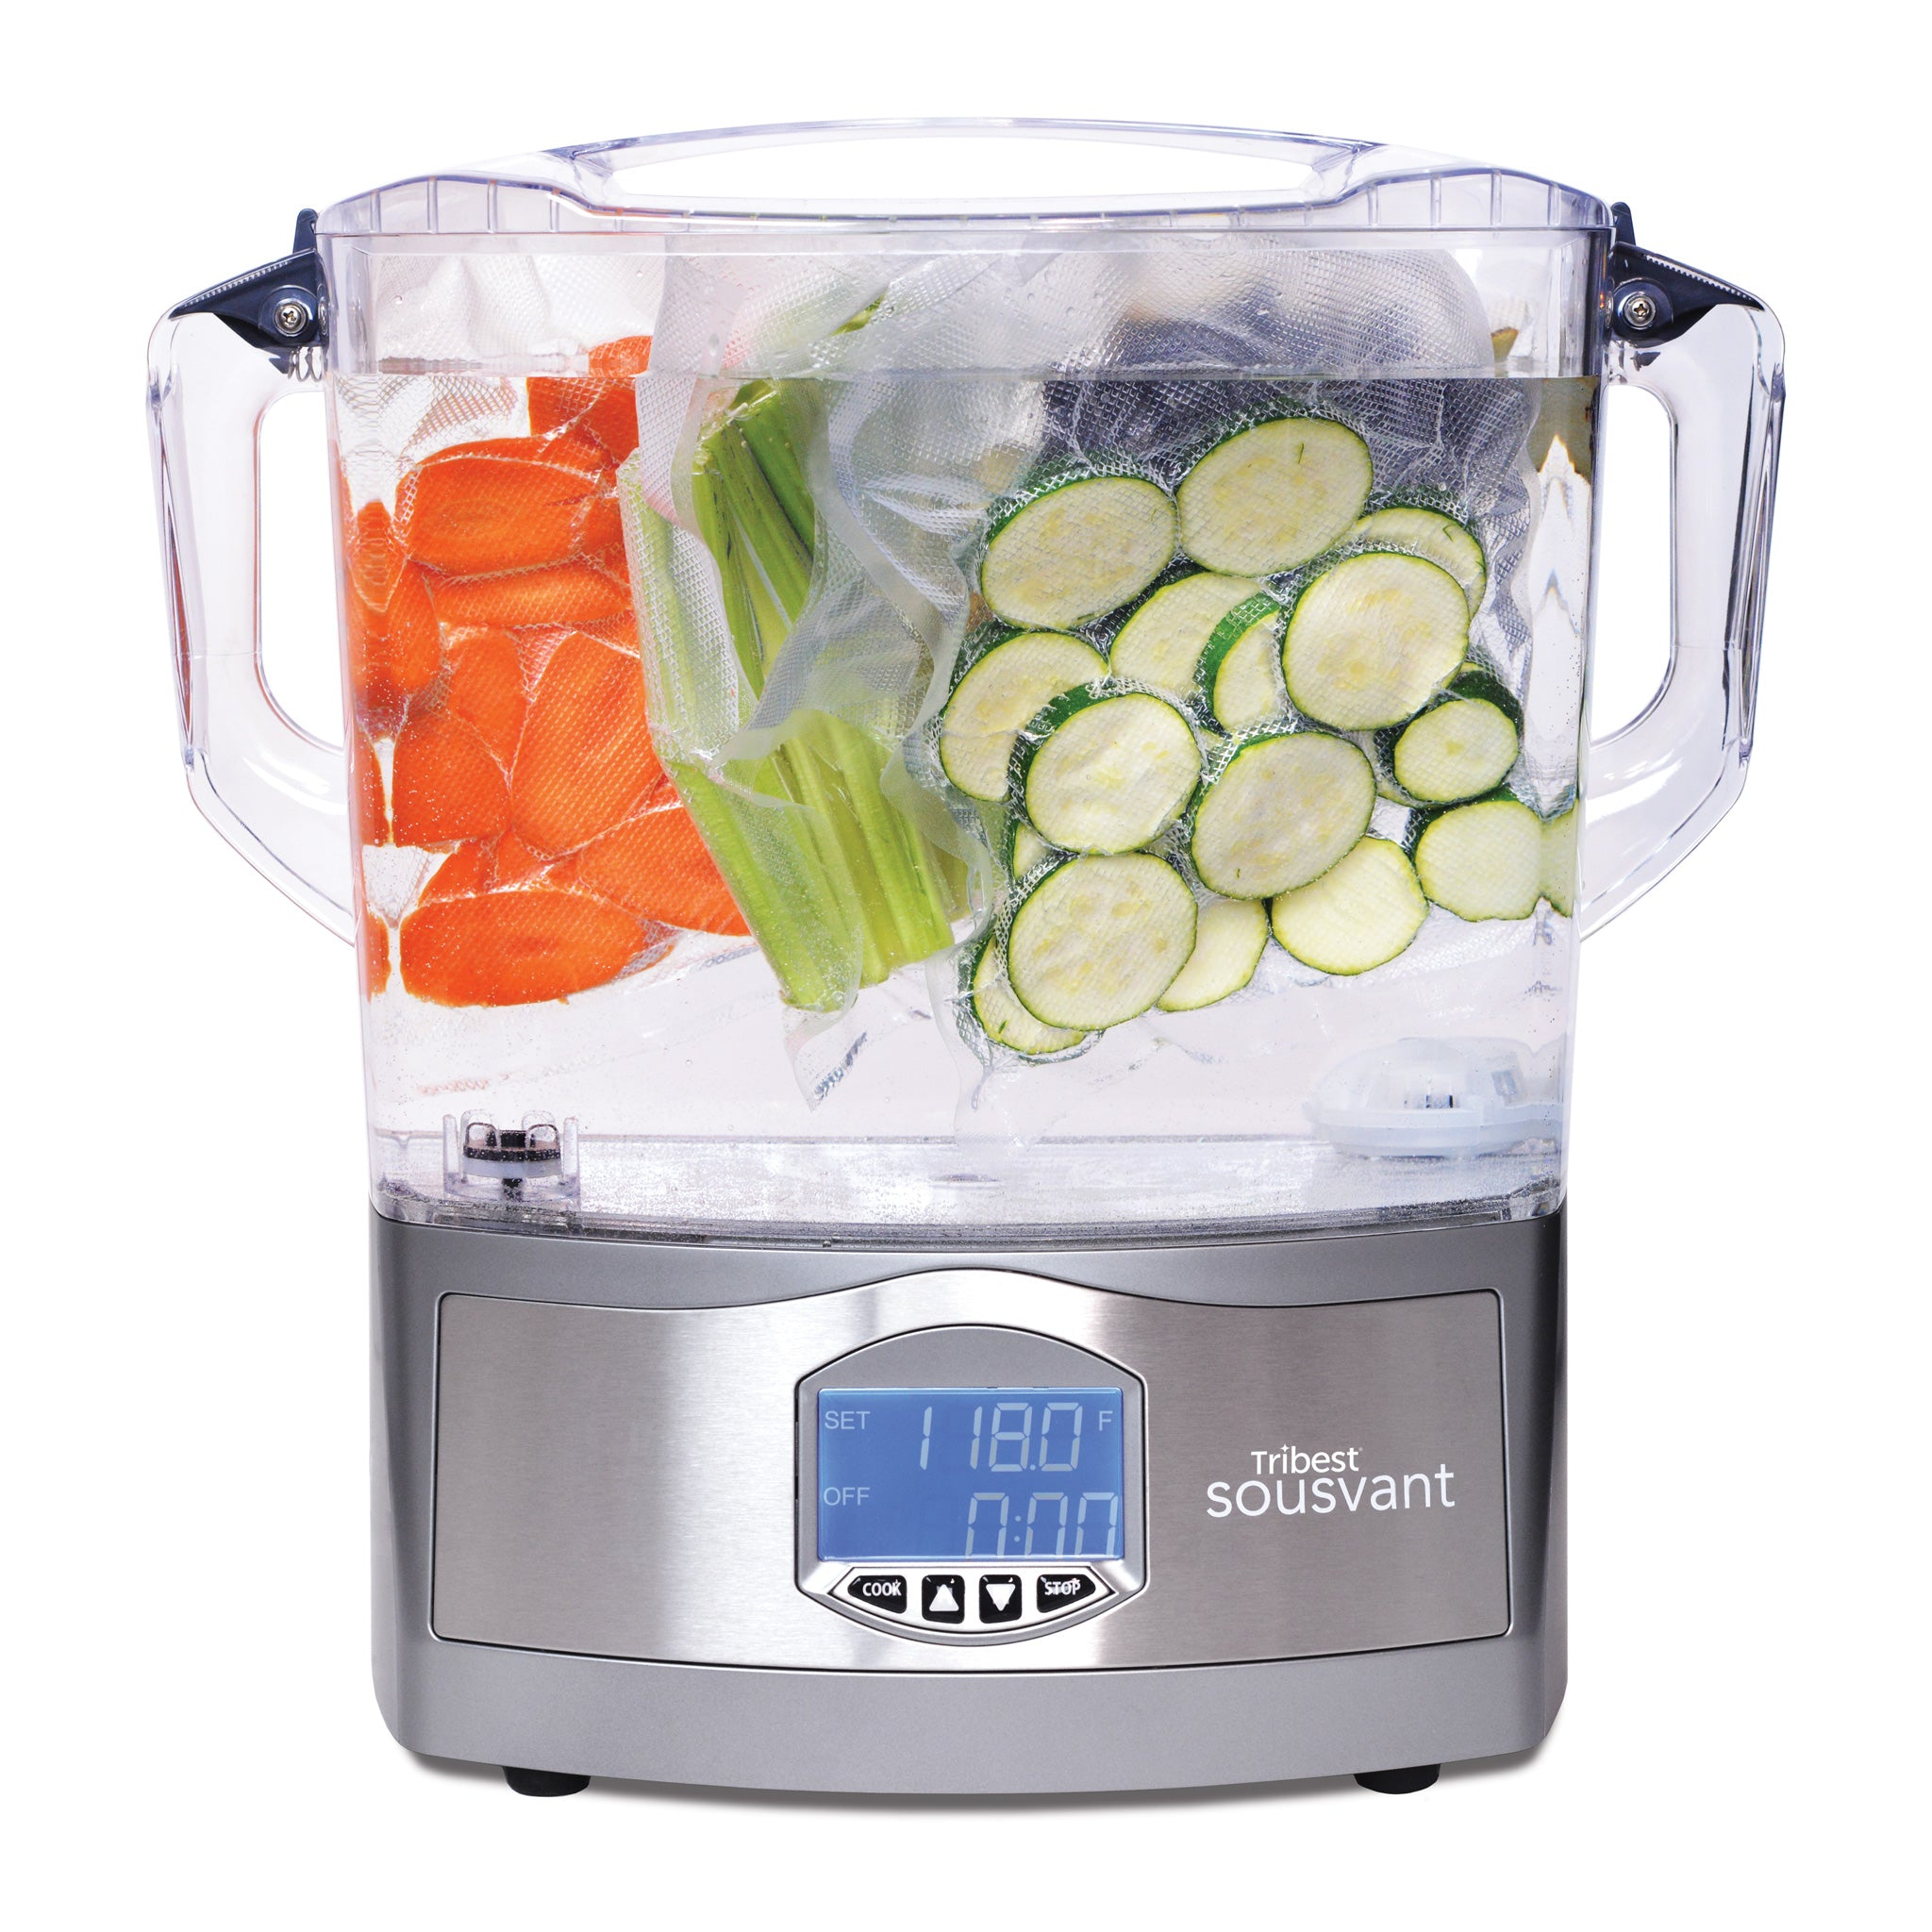 Sousvant Sous Vide Circulator SV-101 with Carrots, Celery, and Cucumbers - Tribest